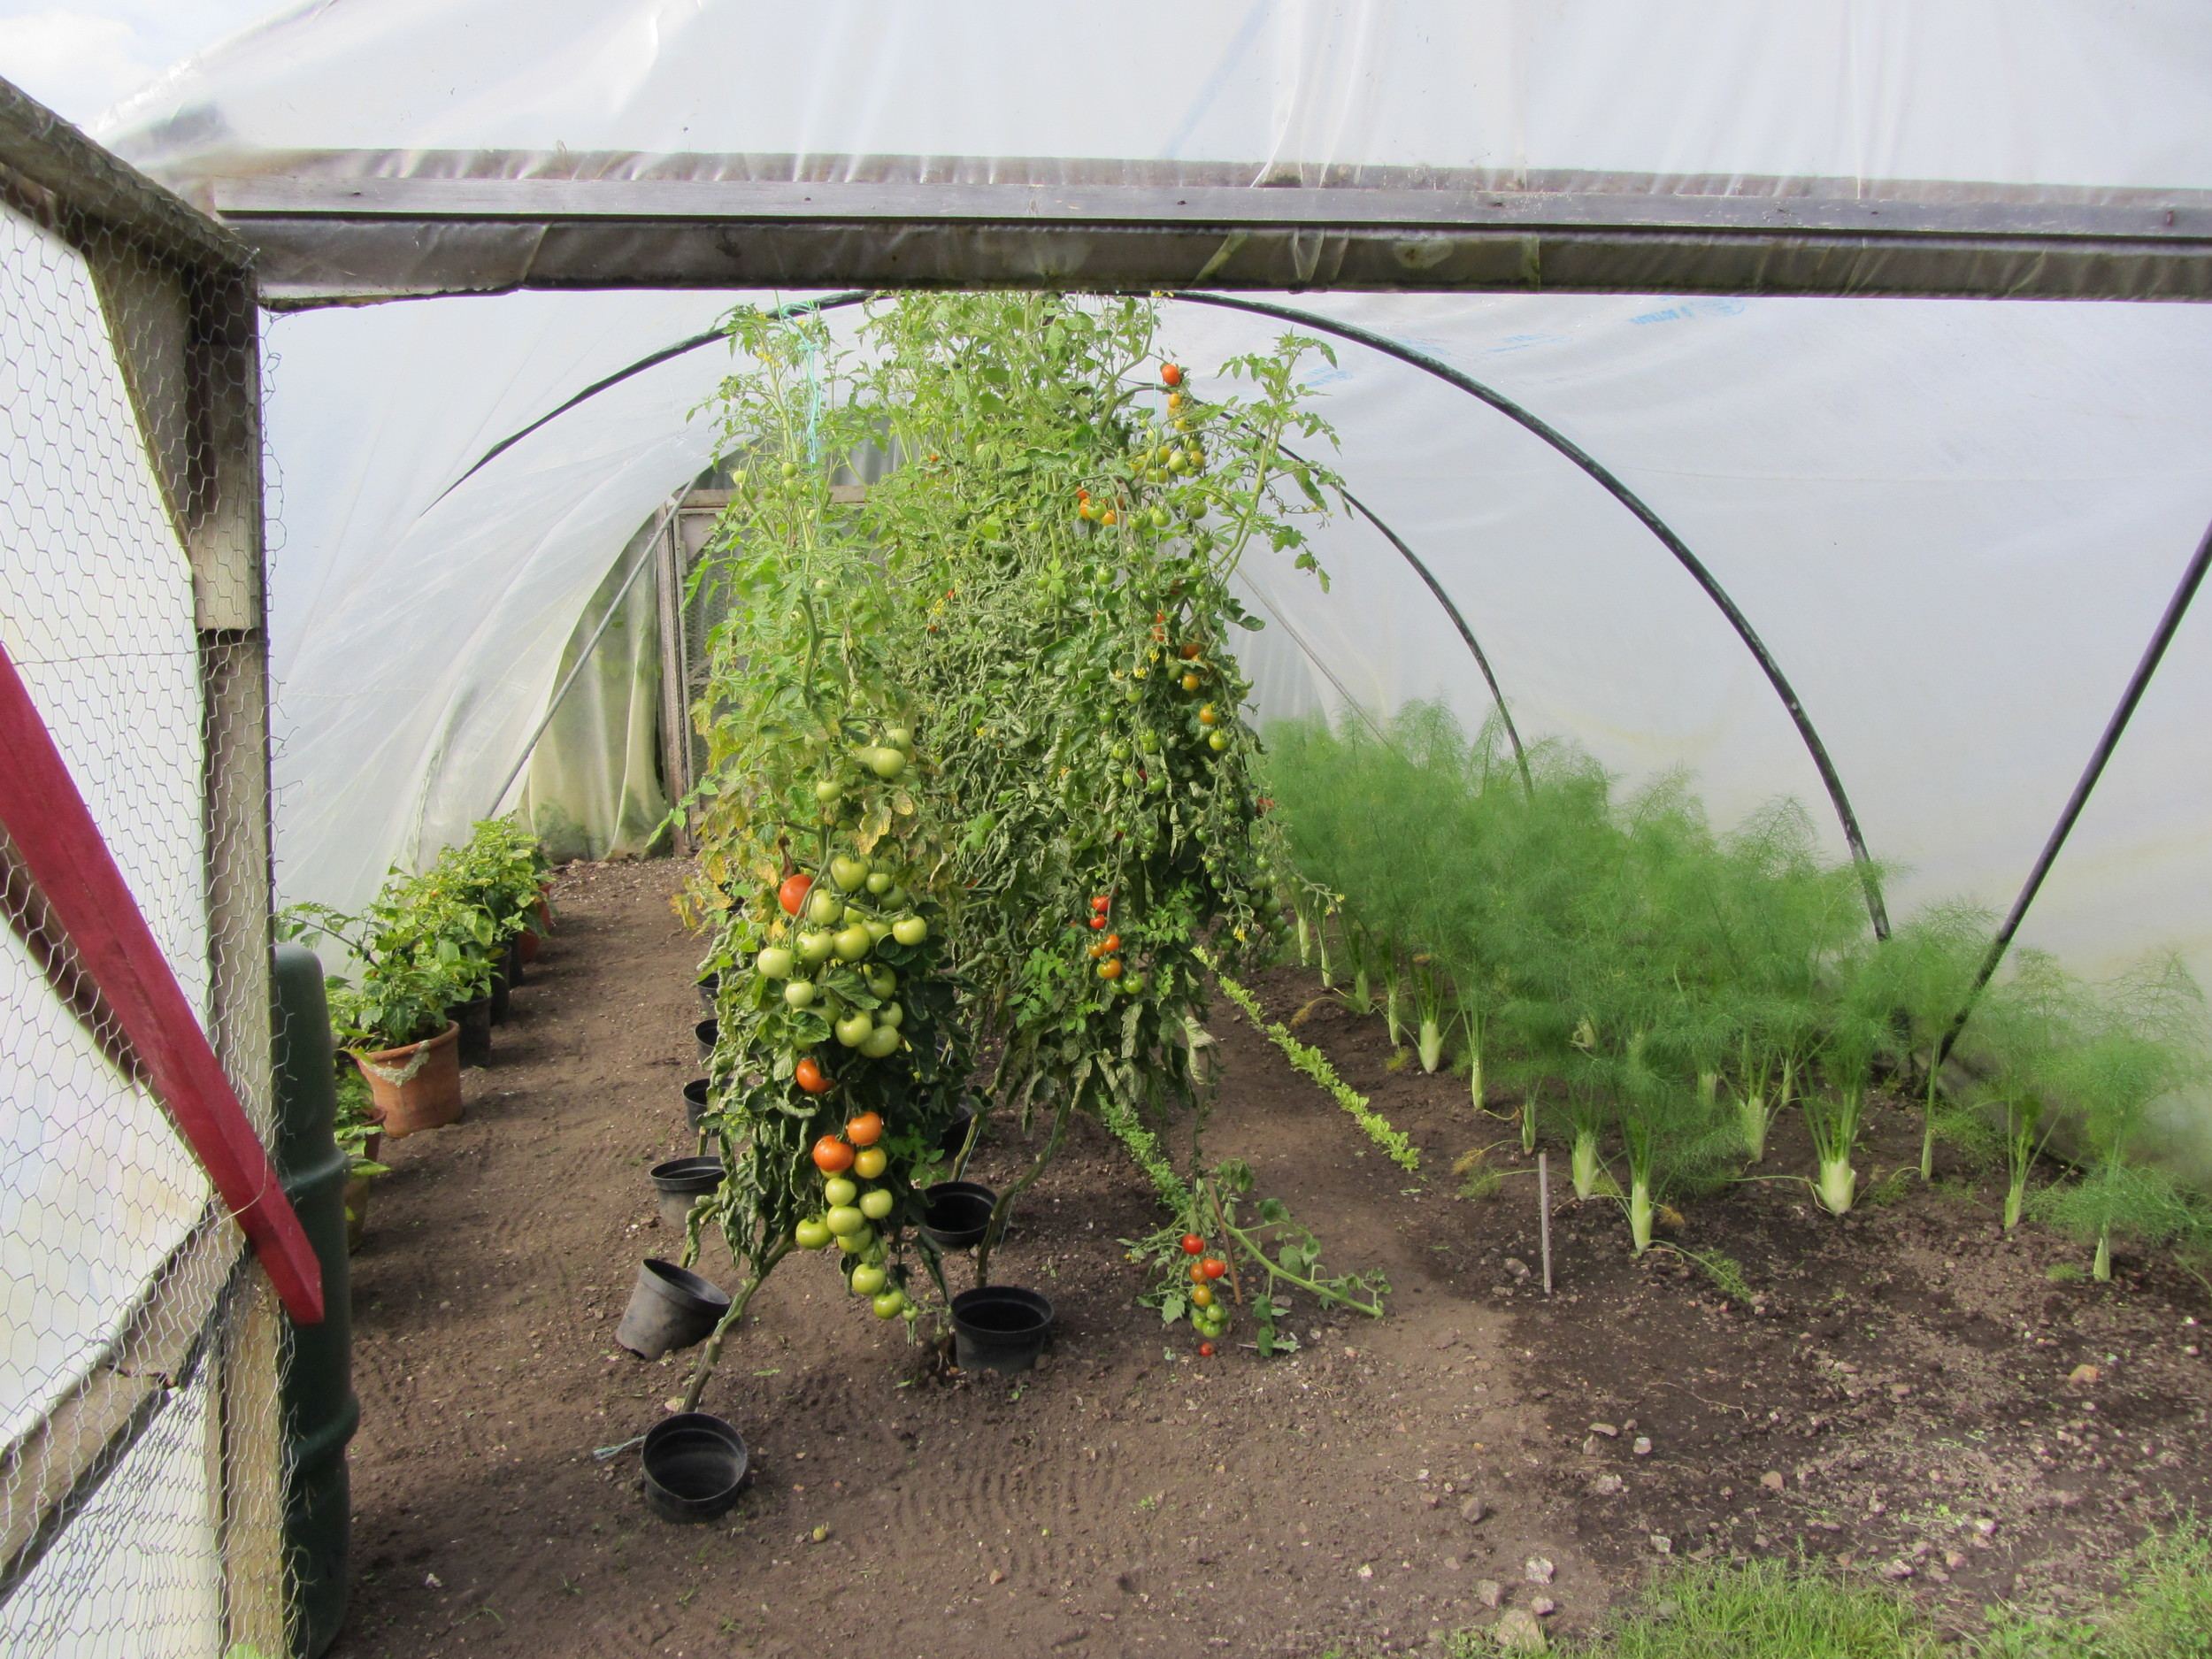 Tomatoes and fennel grow at Deans Court, Dorset